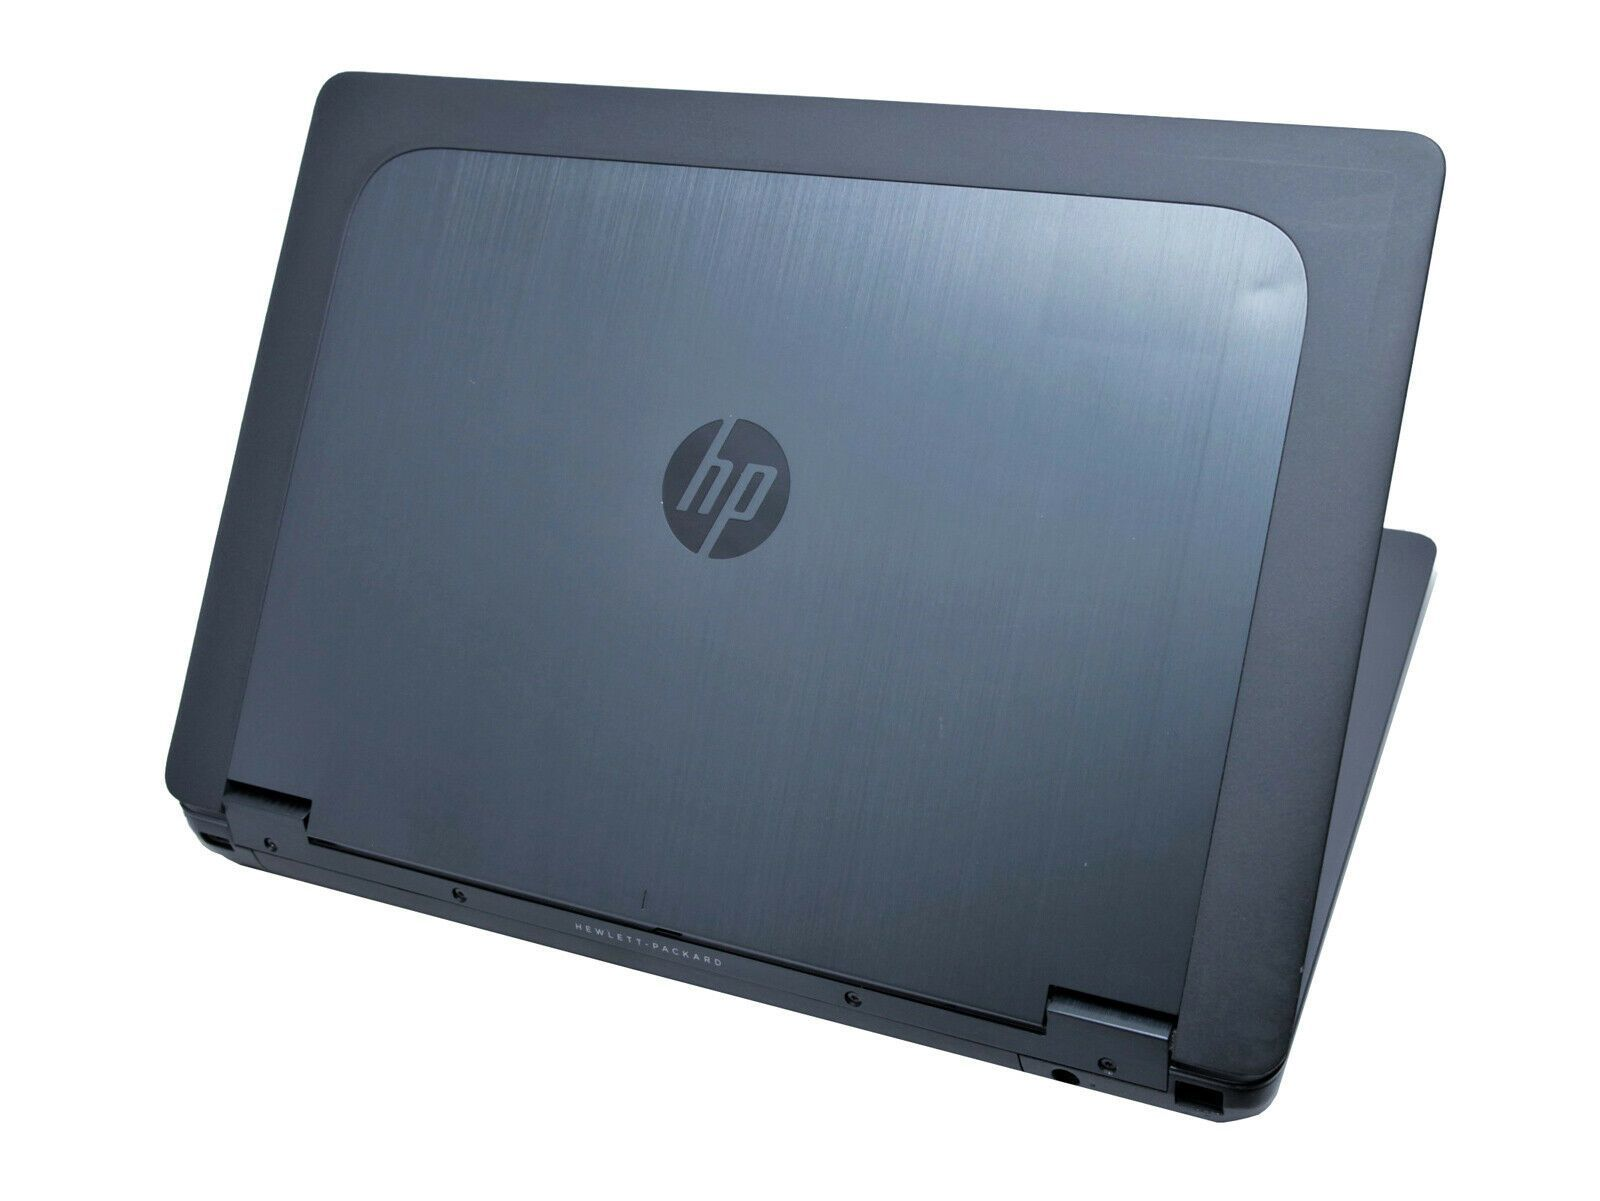 HP ZBook 15 G2 CAD Laptop: 32GB RAM, Core i7 Quad, 256GB SSD+ HDD Warranty, VAT - CruiseTech